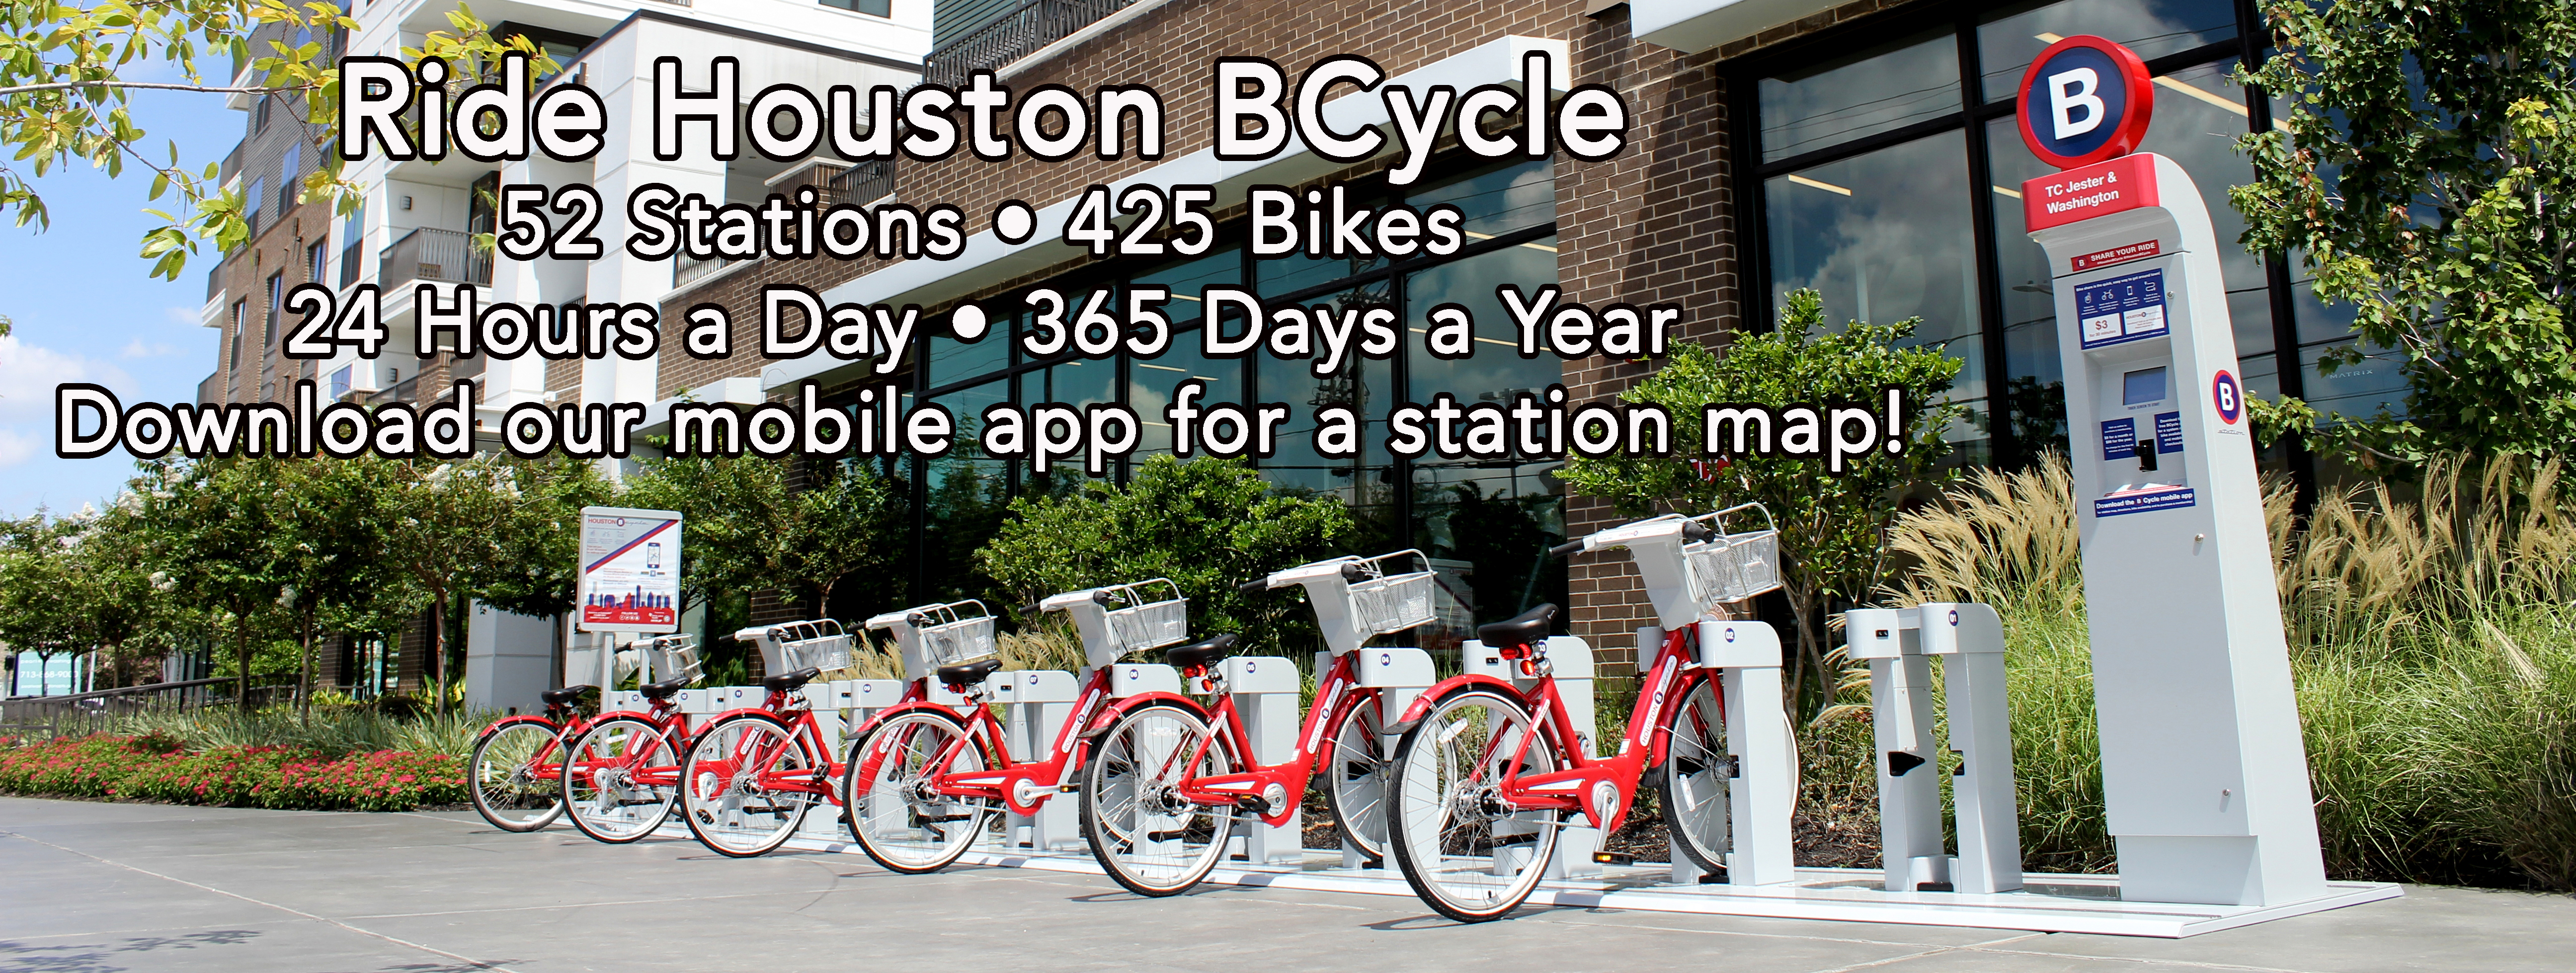 Houston BCycle 52 Stations 425 Bikes